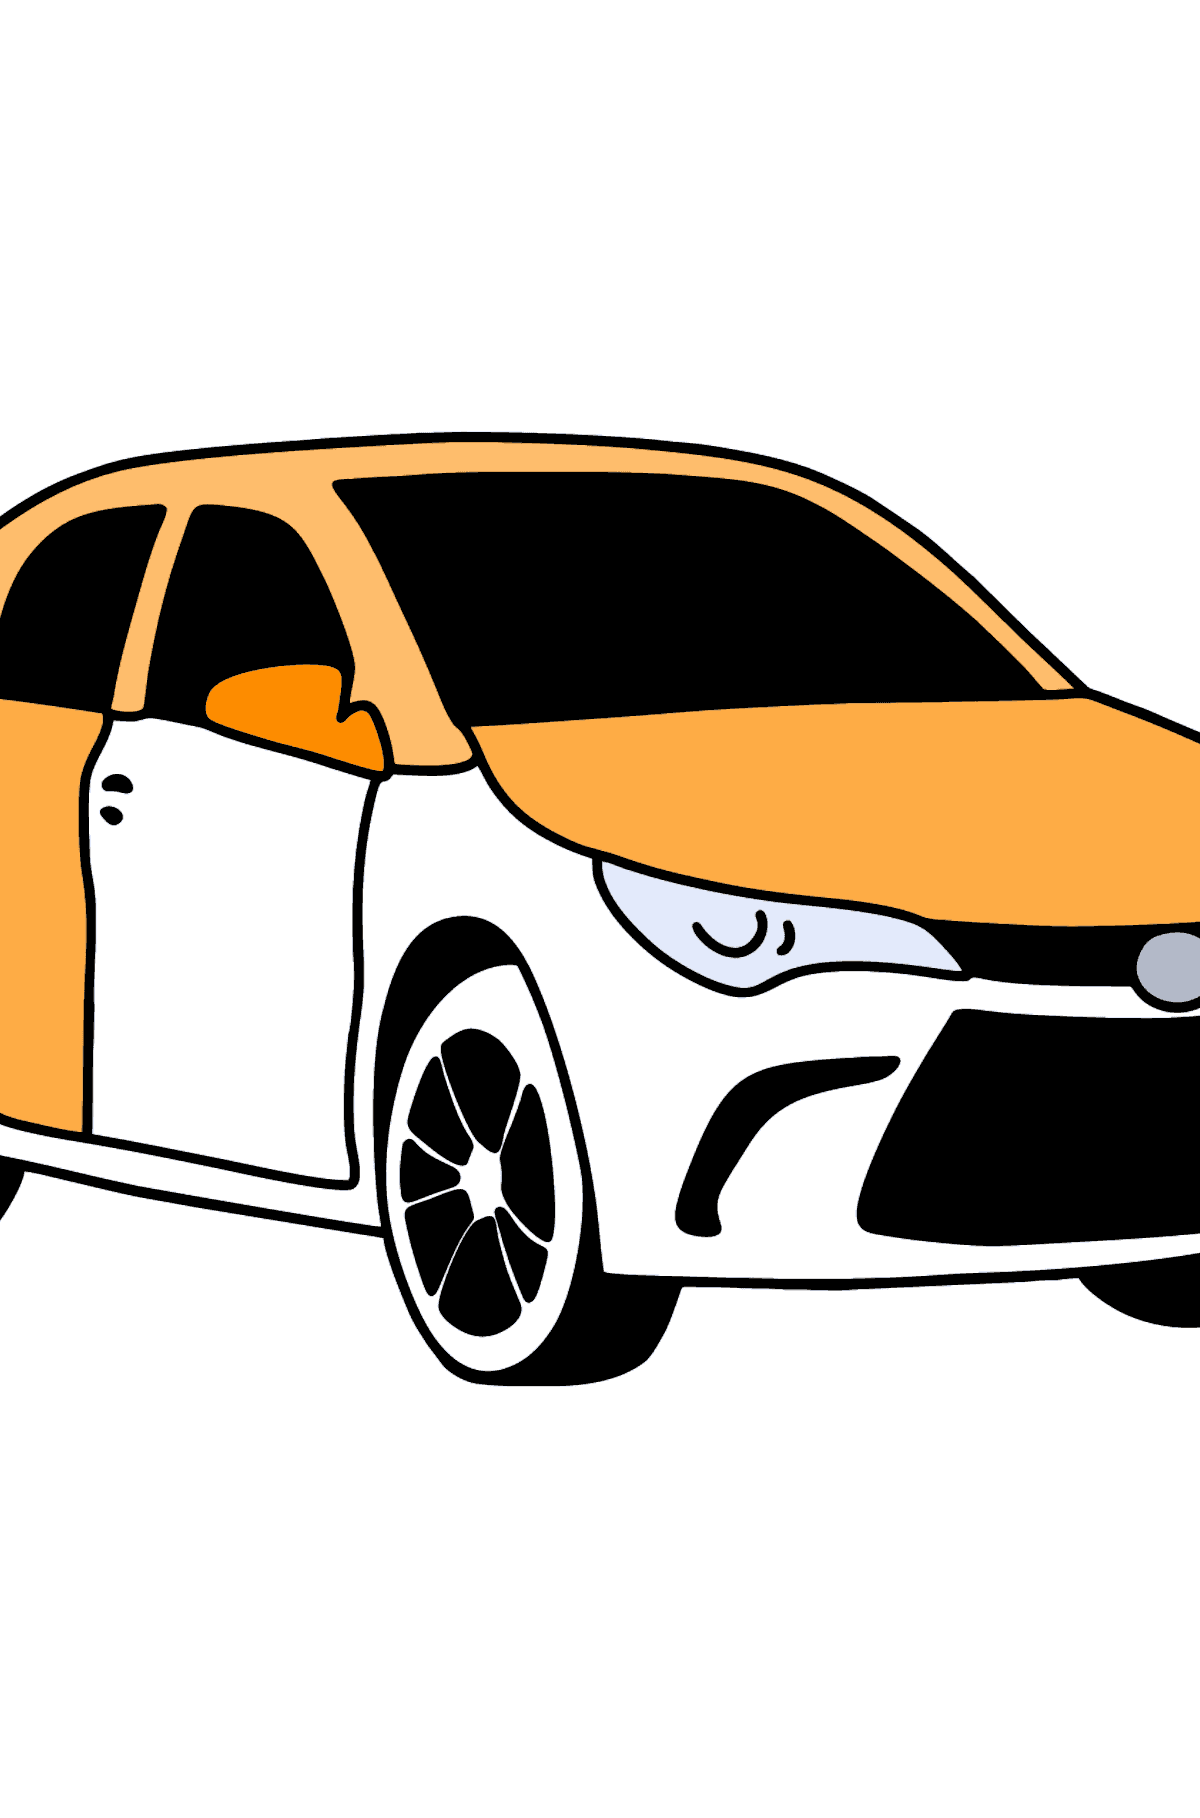 Toyota Camry coloring page - Coloring Pages for Kids